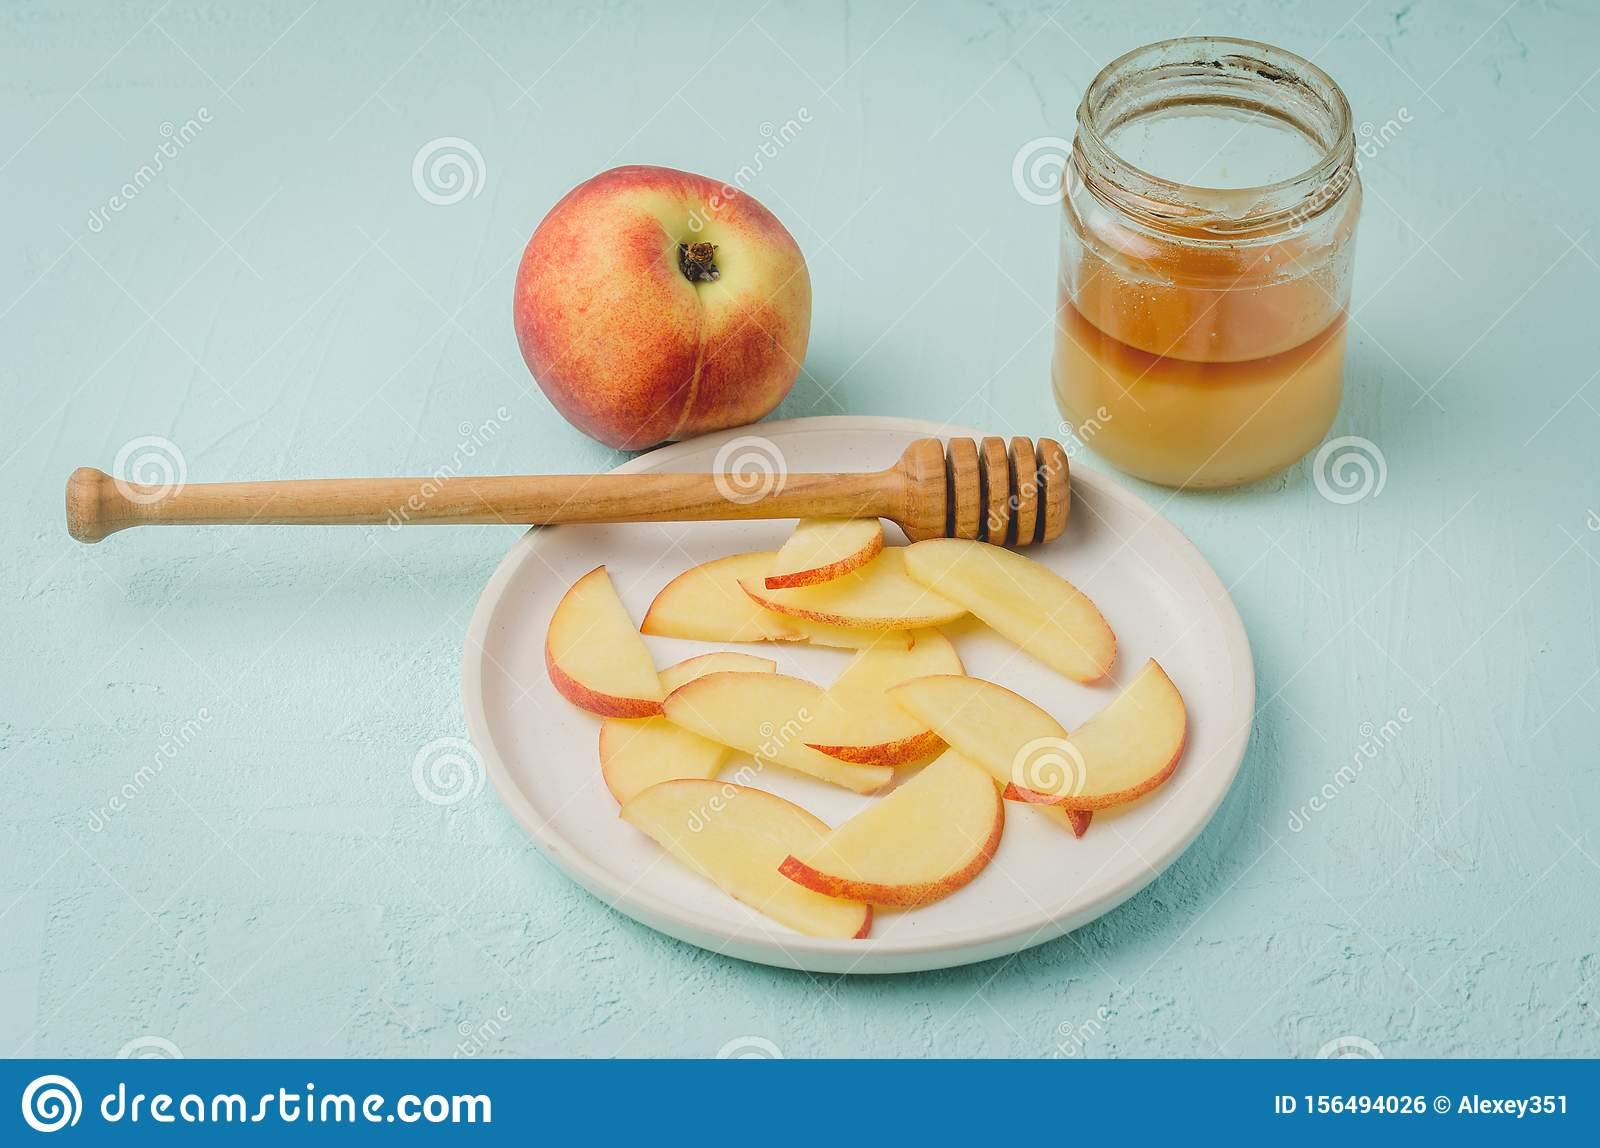 Healthy food. Sliced peach with honey in a bowl, selective focus. Blue background